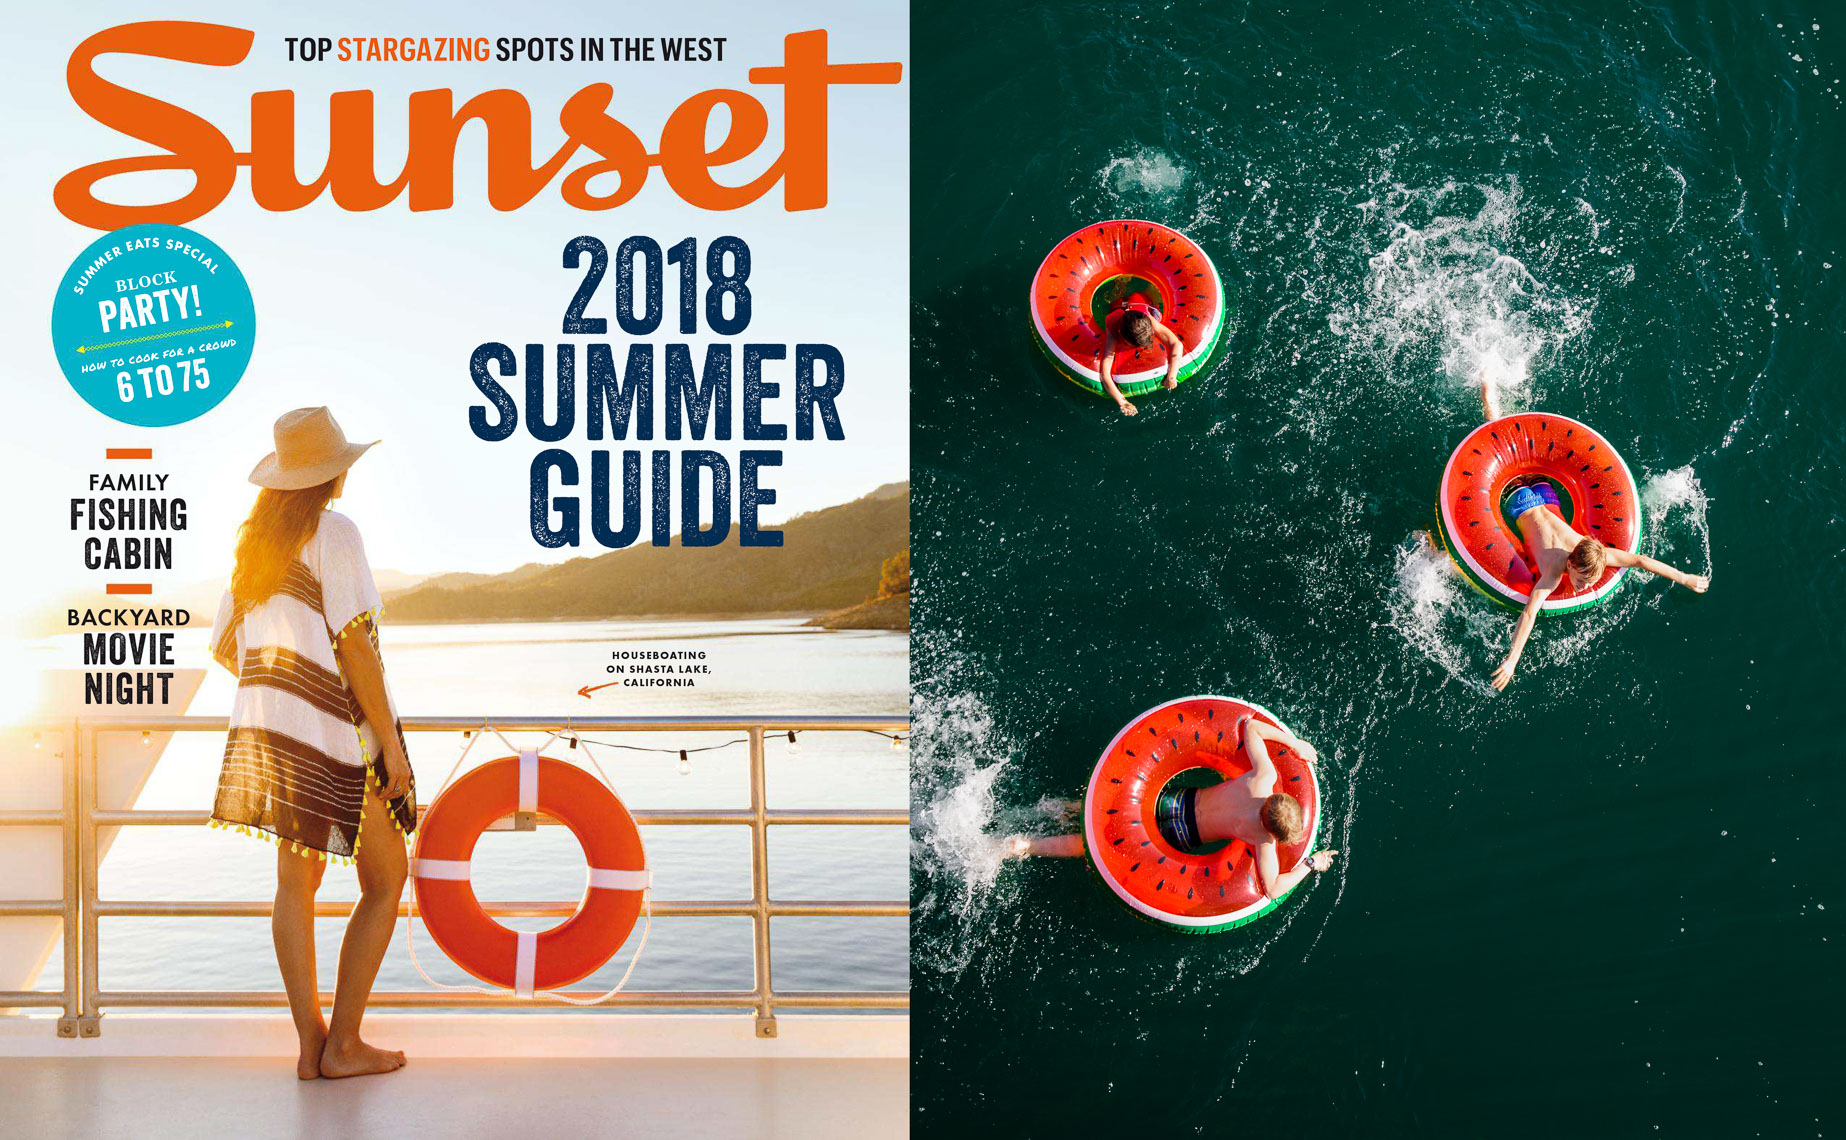 Sunset_CoverJune_2018